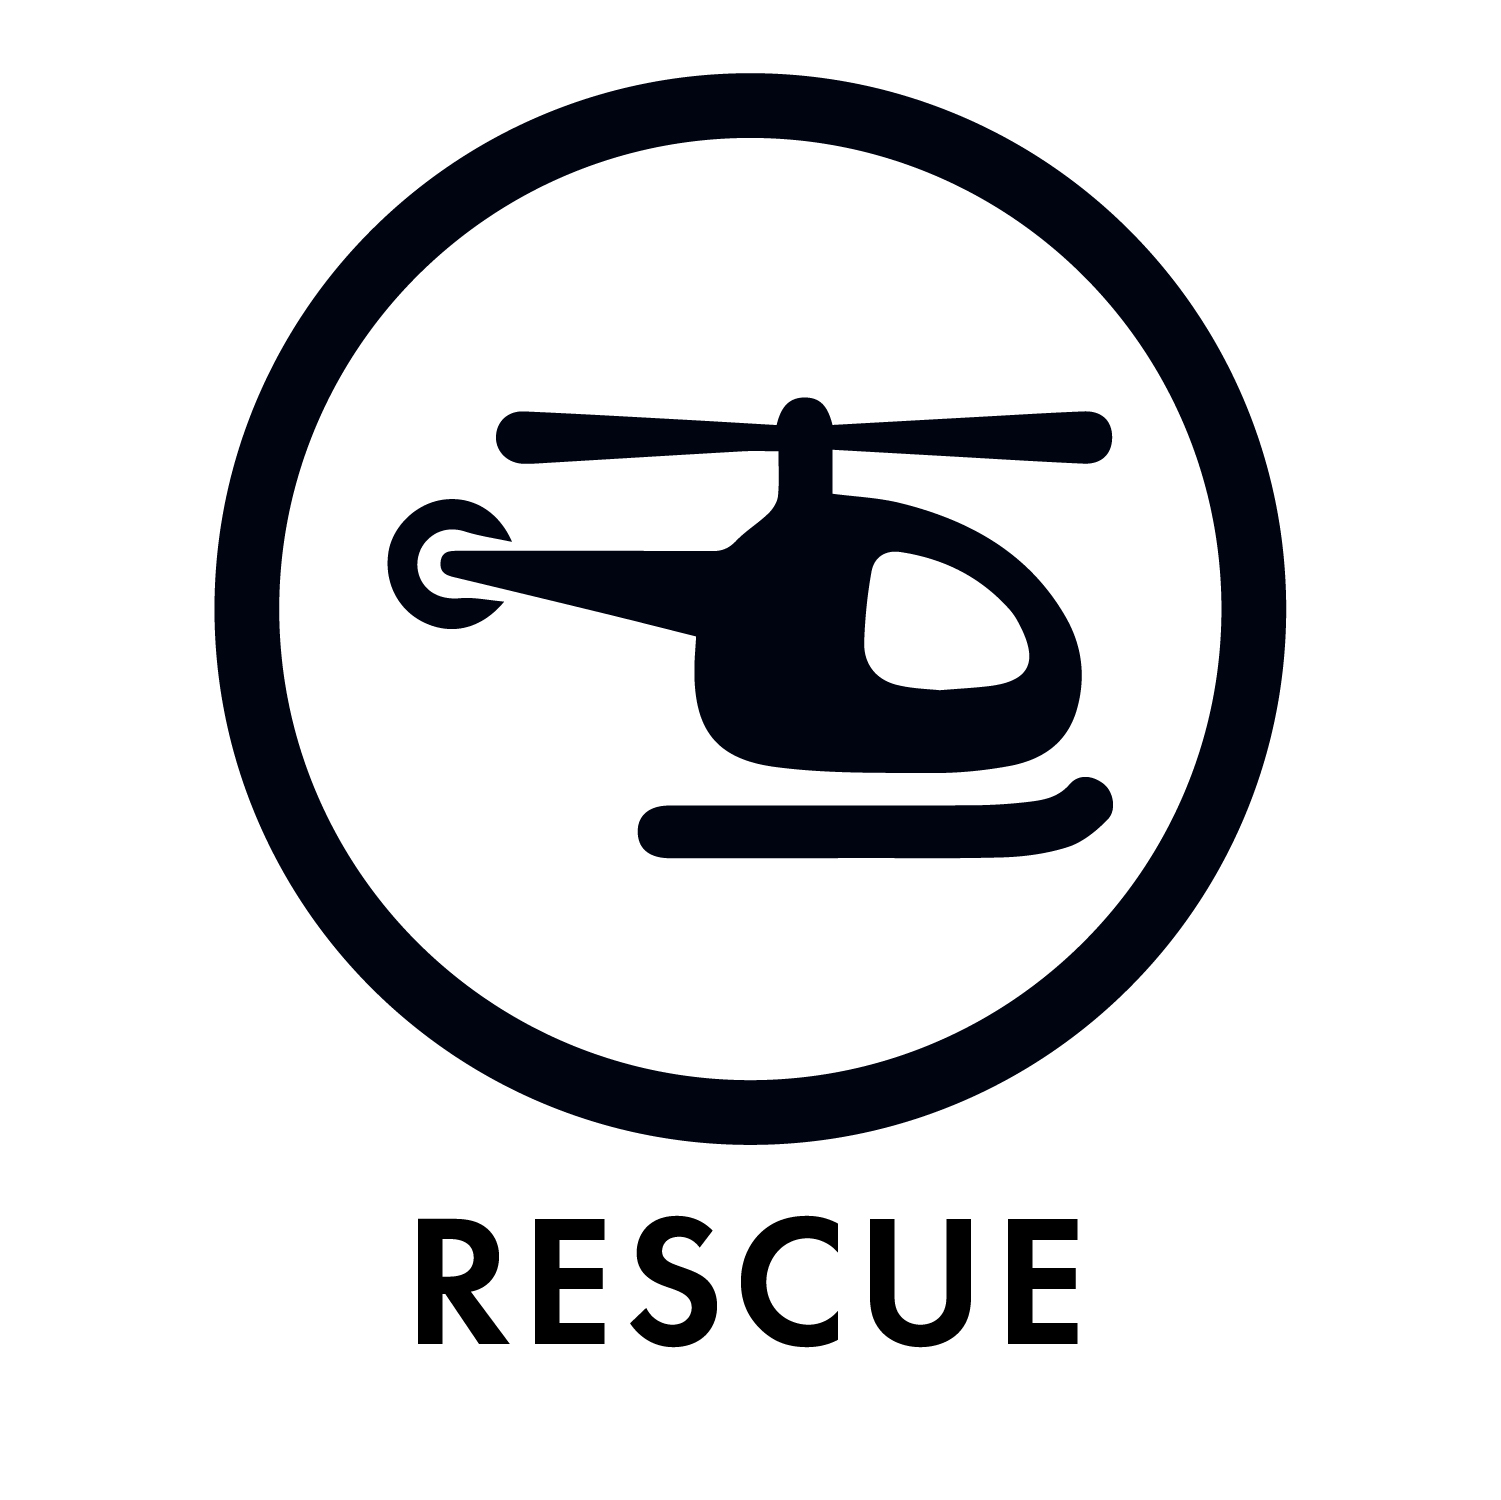 Icons_AW_Rescue.jpg